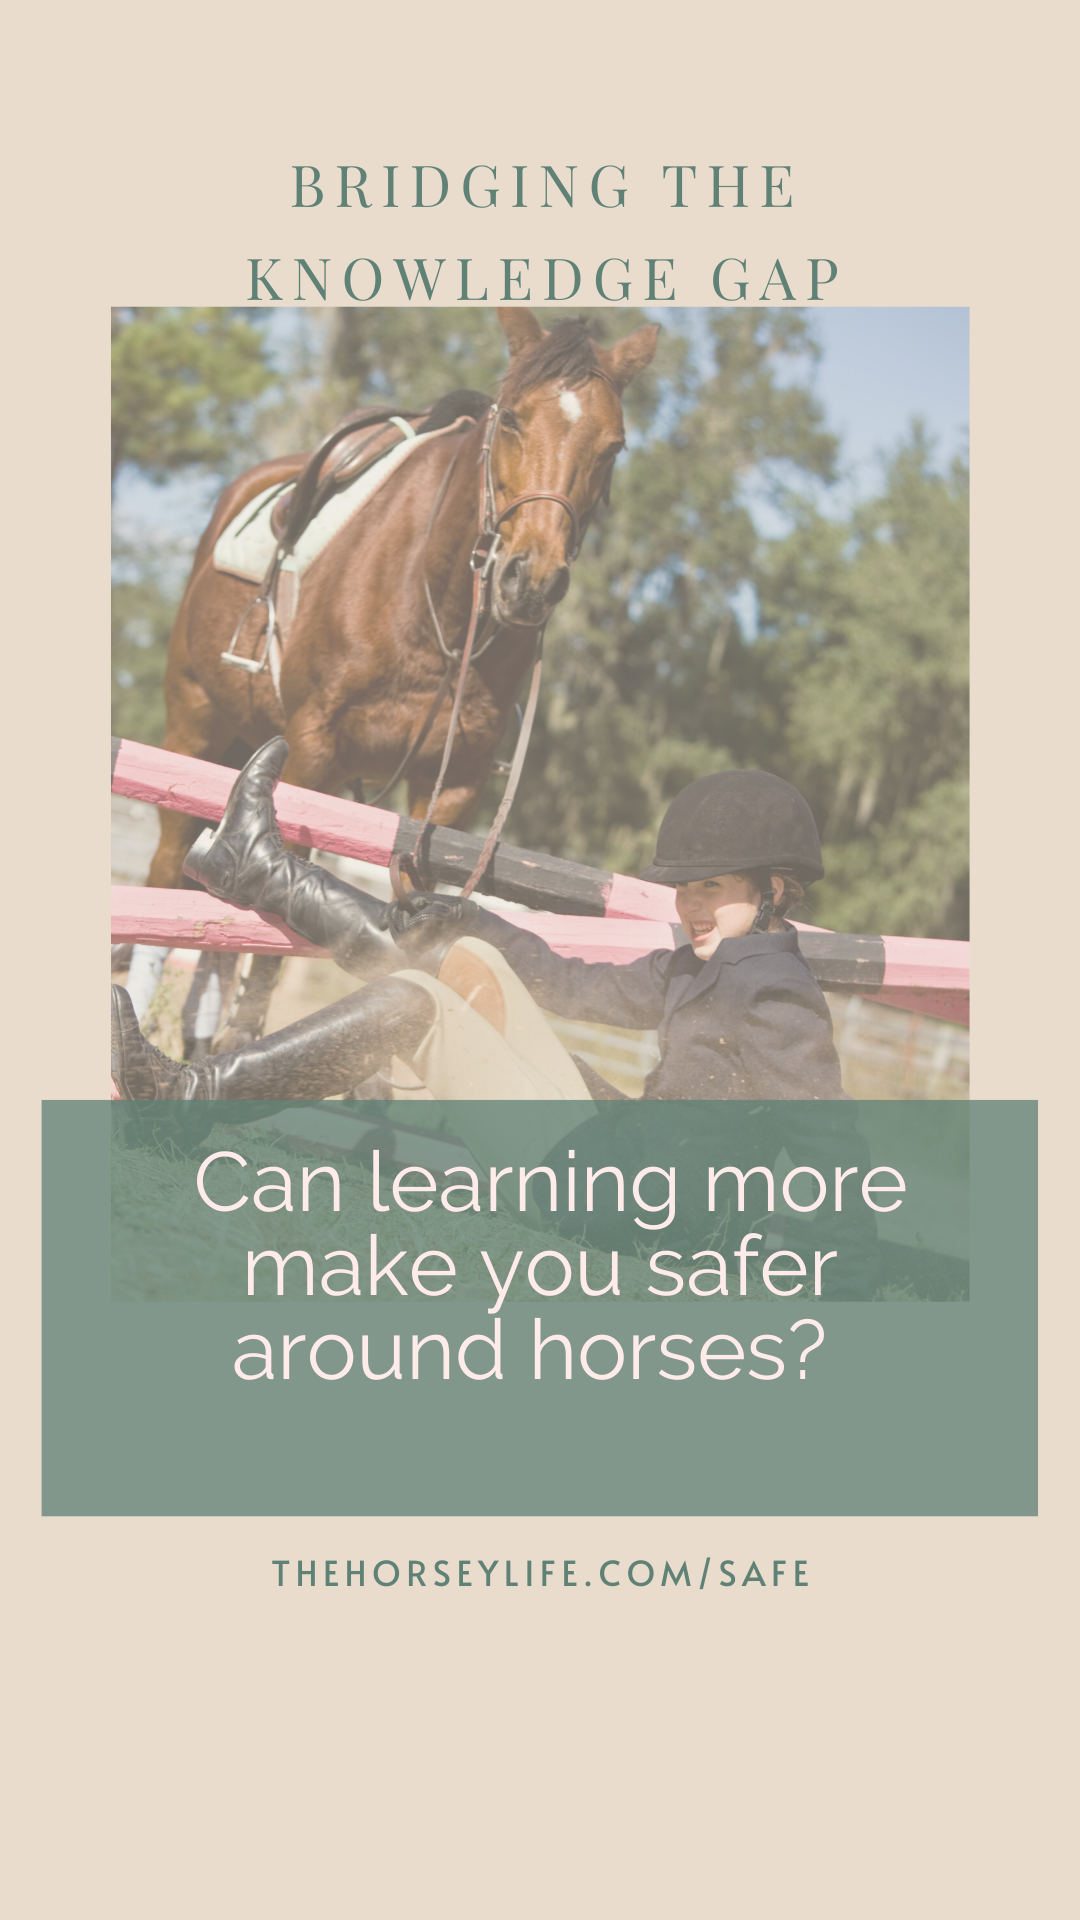 Bridging the knowledge gap. Can learning more make you safer around horses?